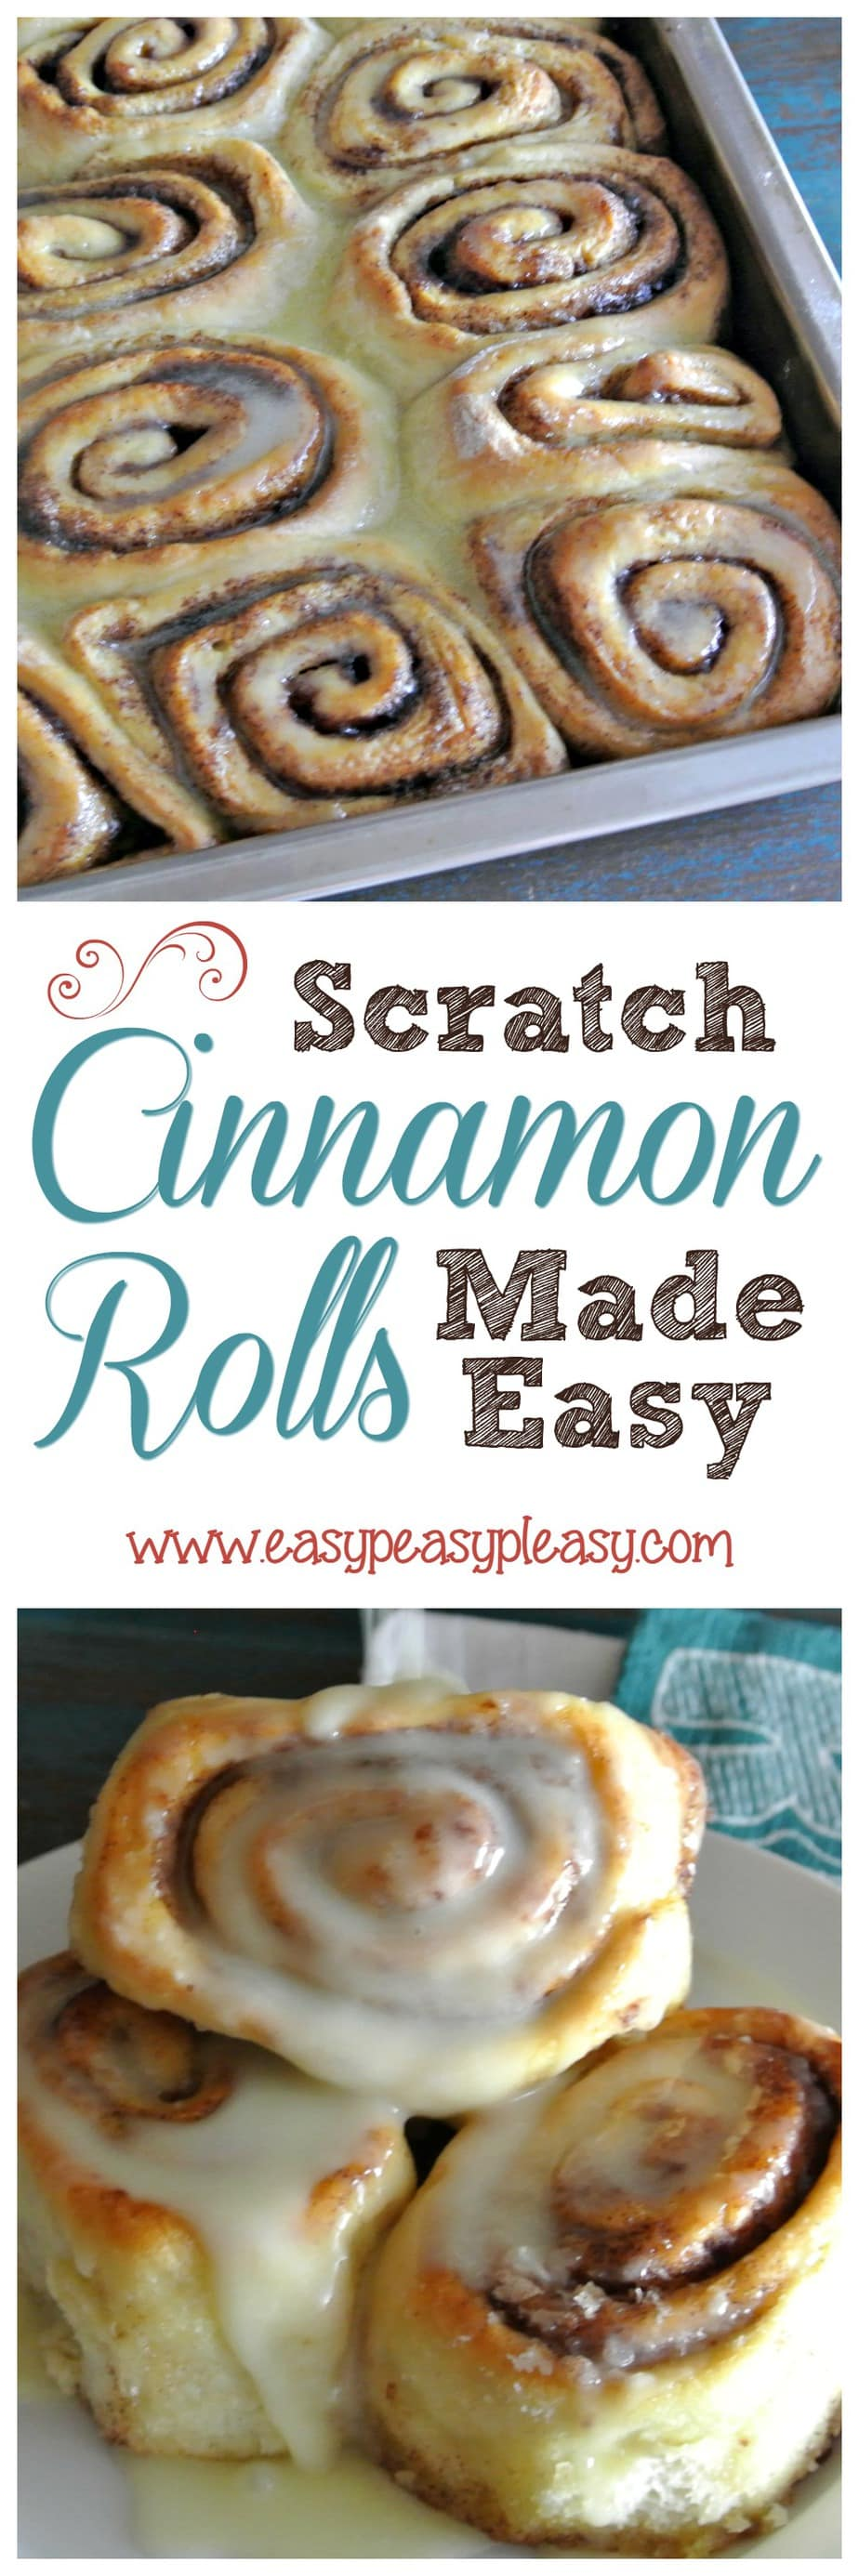 Scratch Cinnamon Rolls Made Easy!